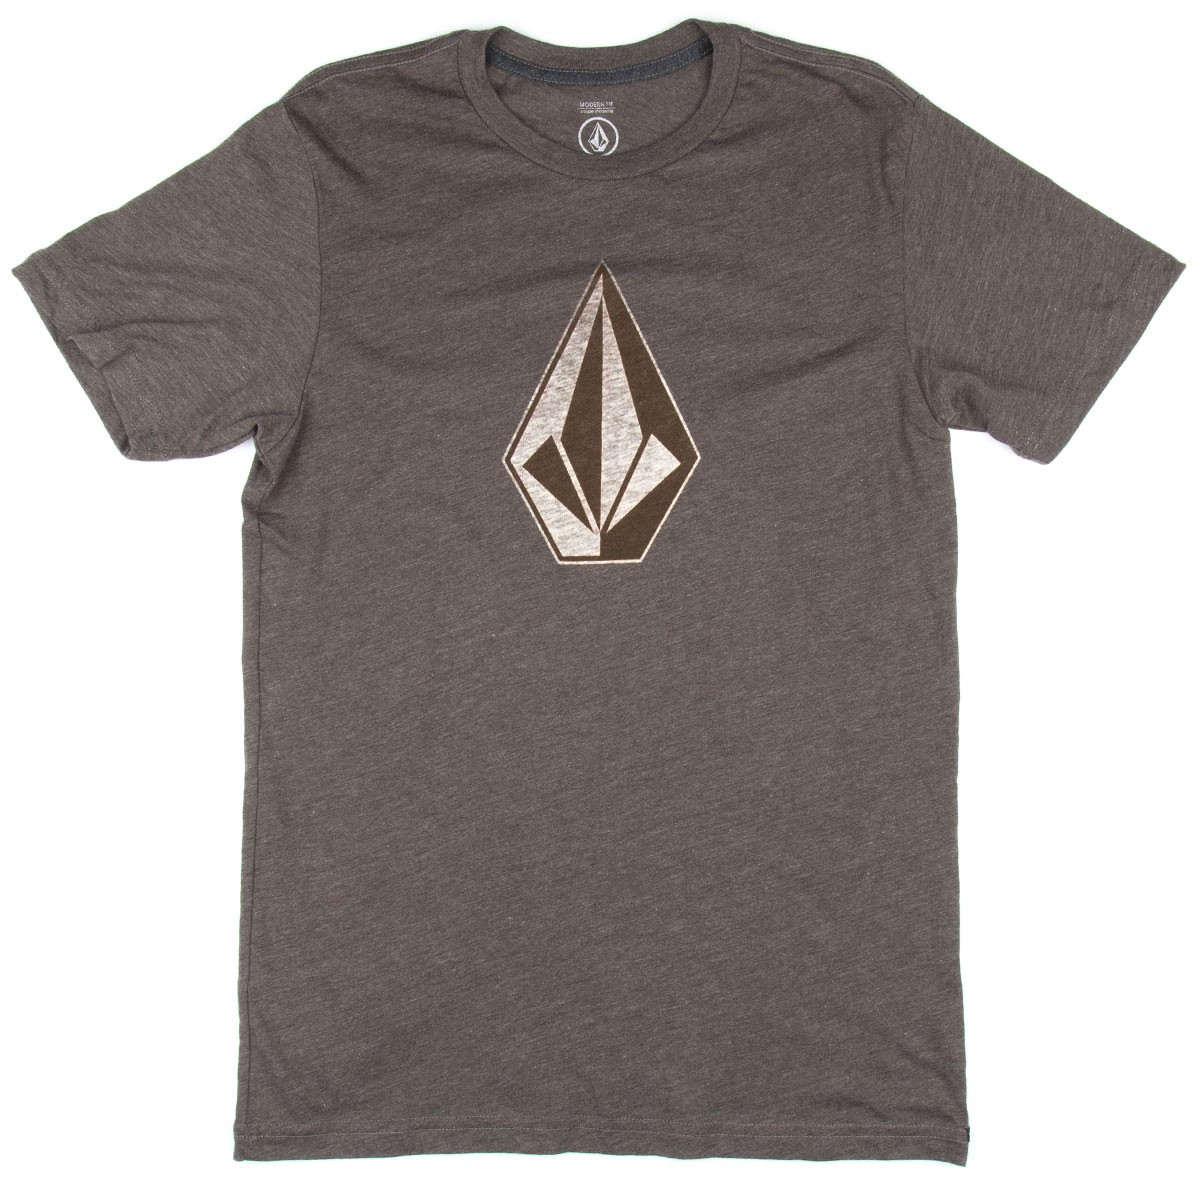 Volcom Whenever T-Shirt - Bark Brown